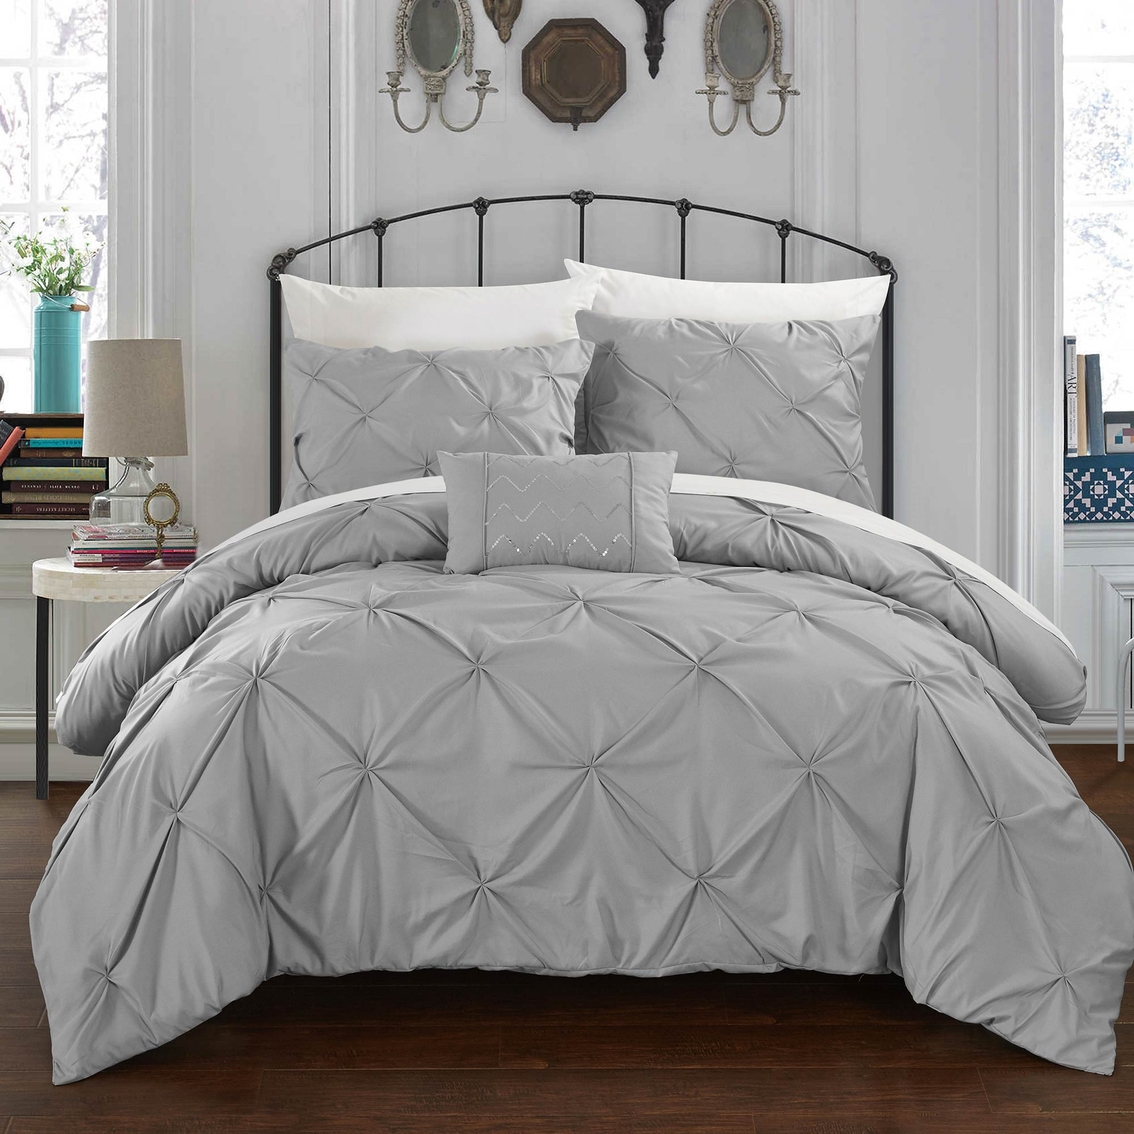 chic home design armi 8 pc. bed in a bag duvet set | duvet covers